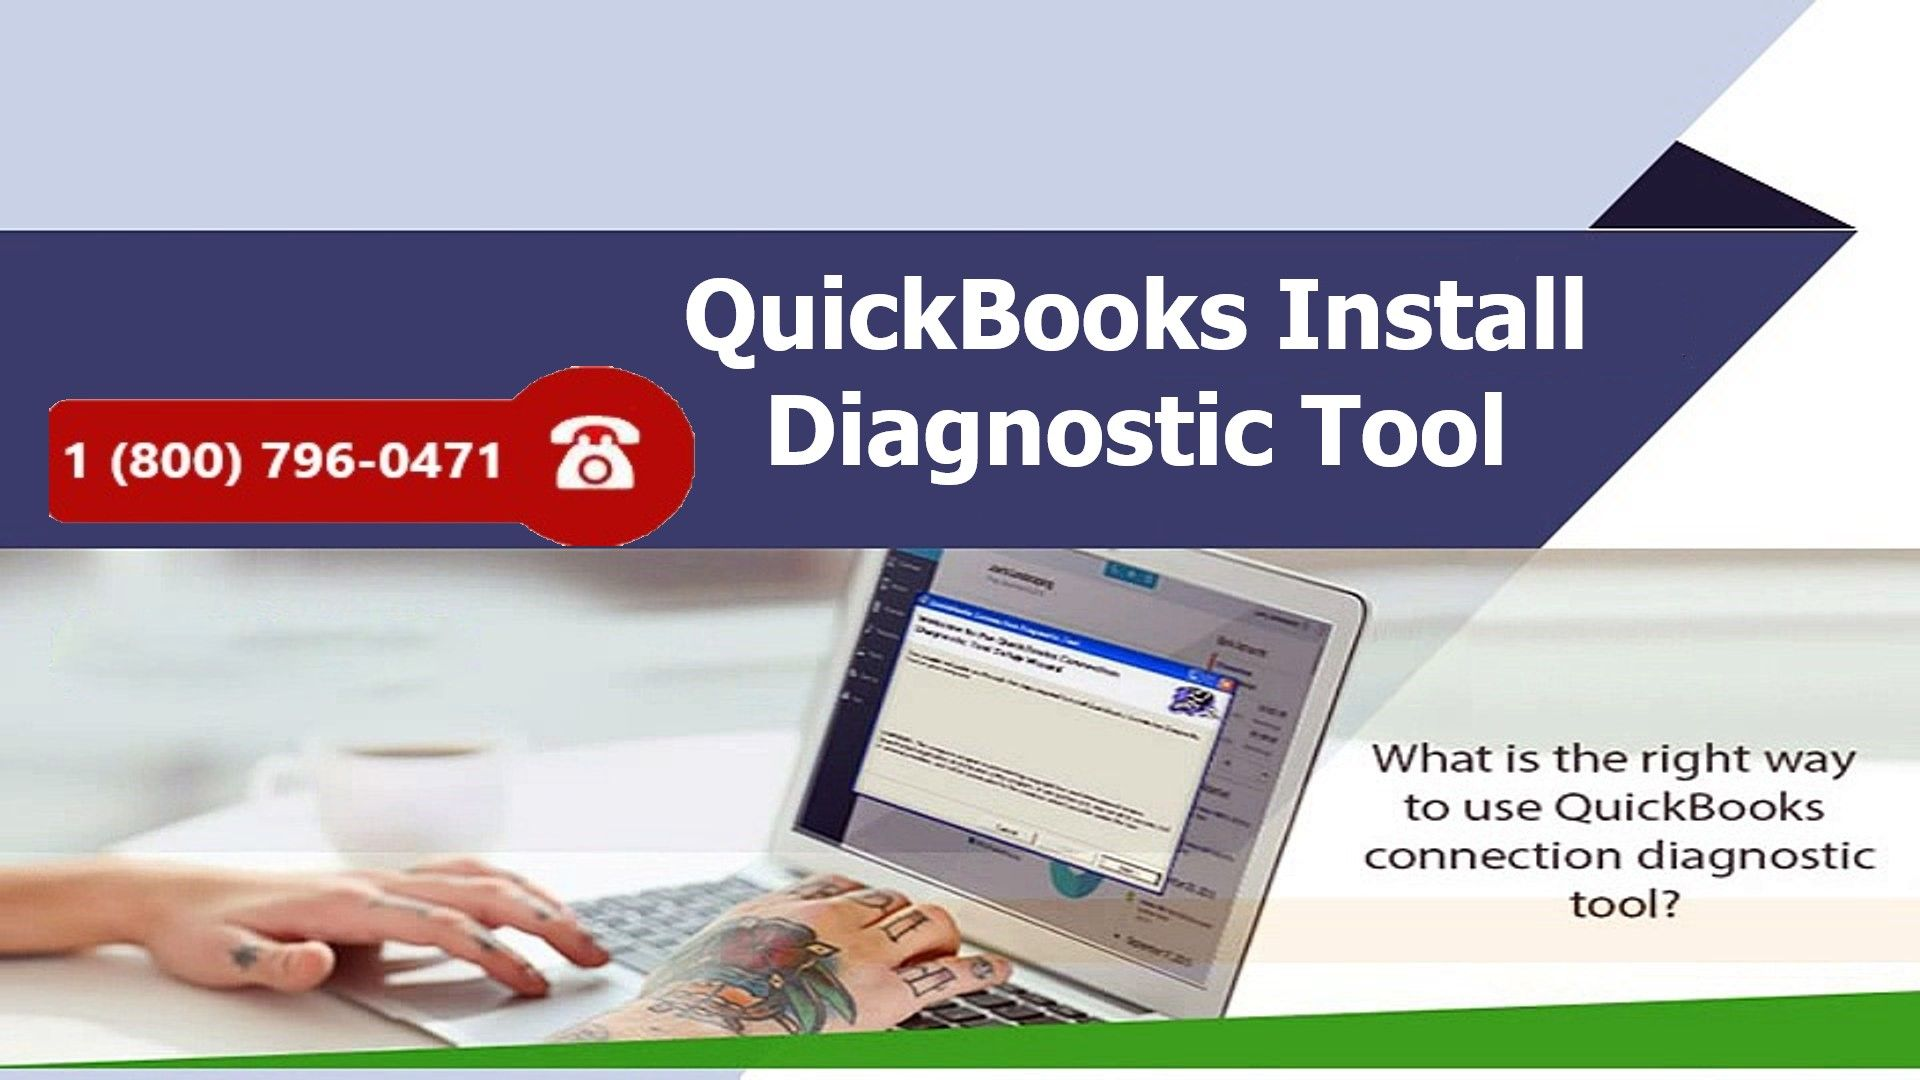 QuickBooks Install Diagnostic Tool Learn How to Use 1800